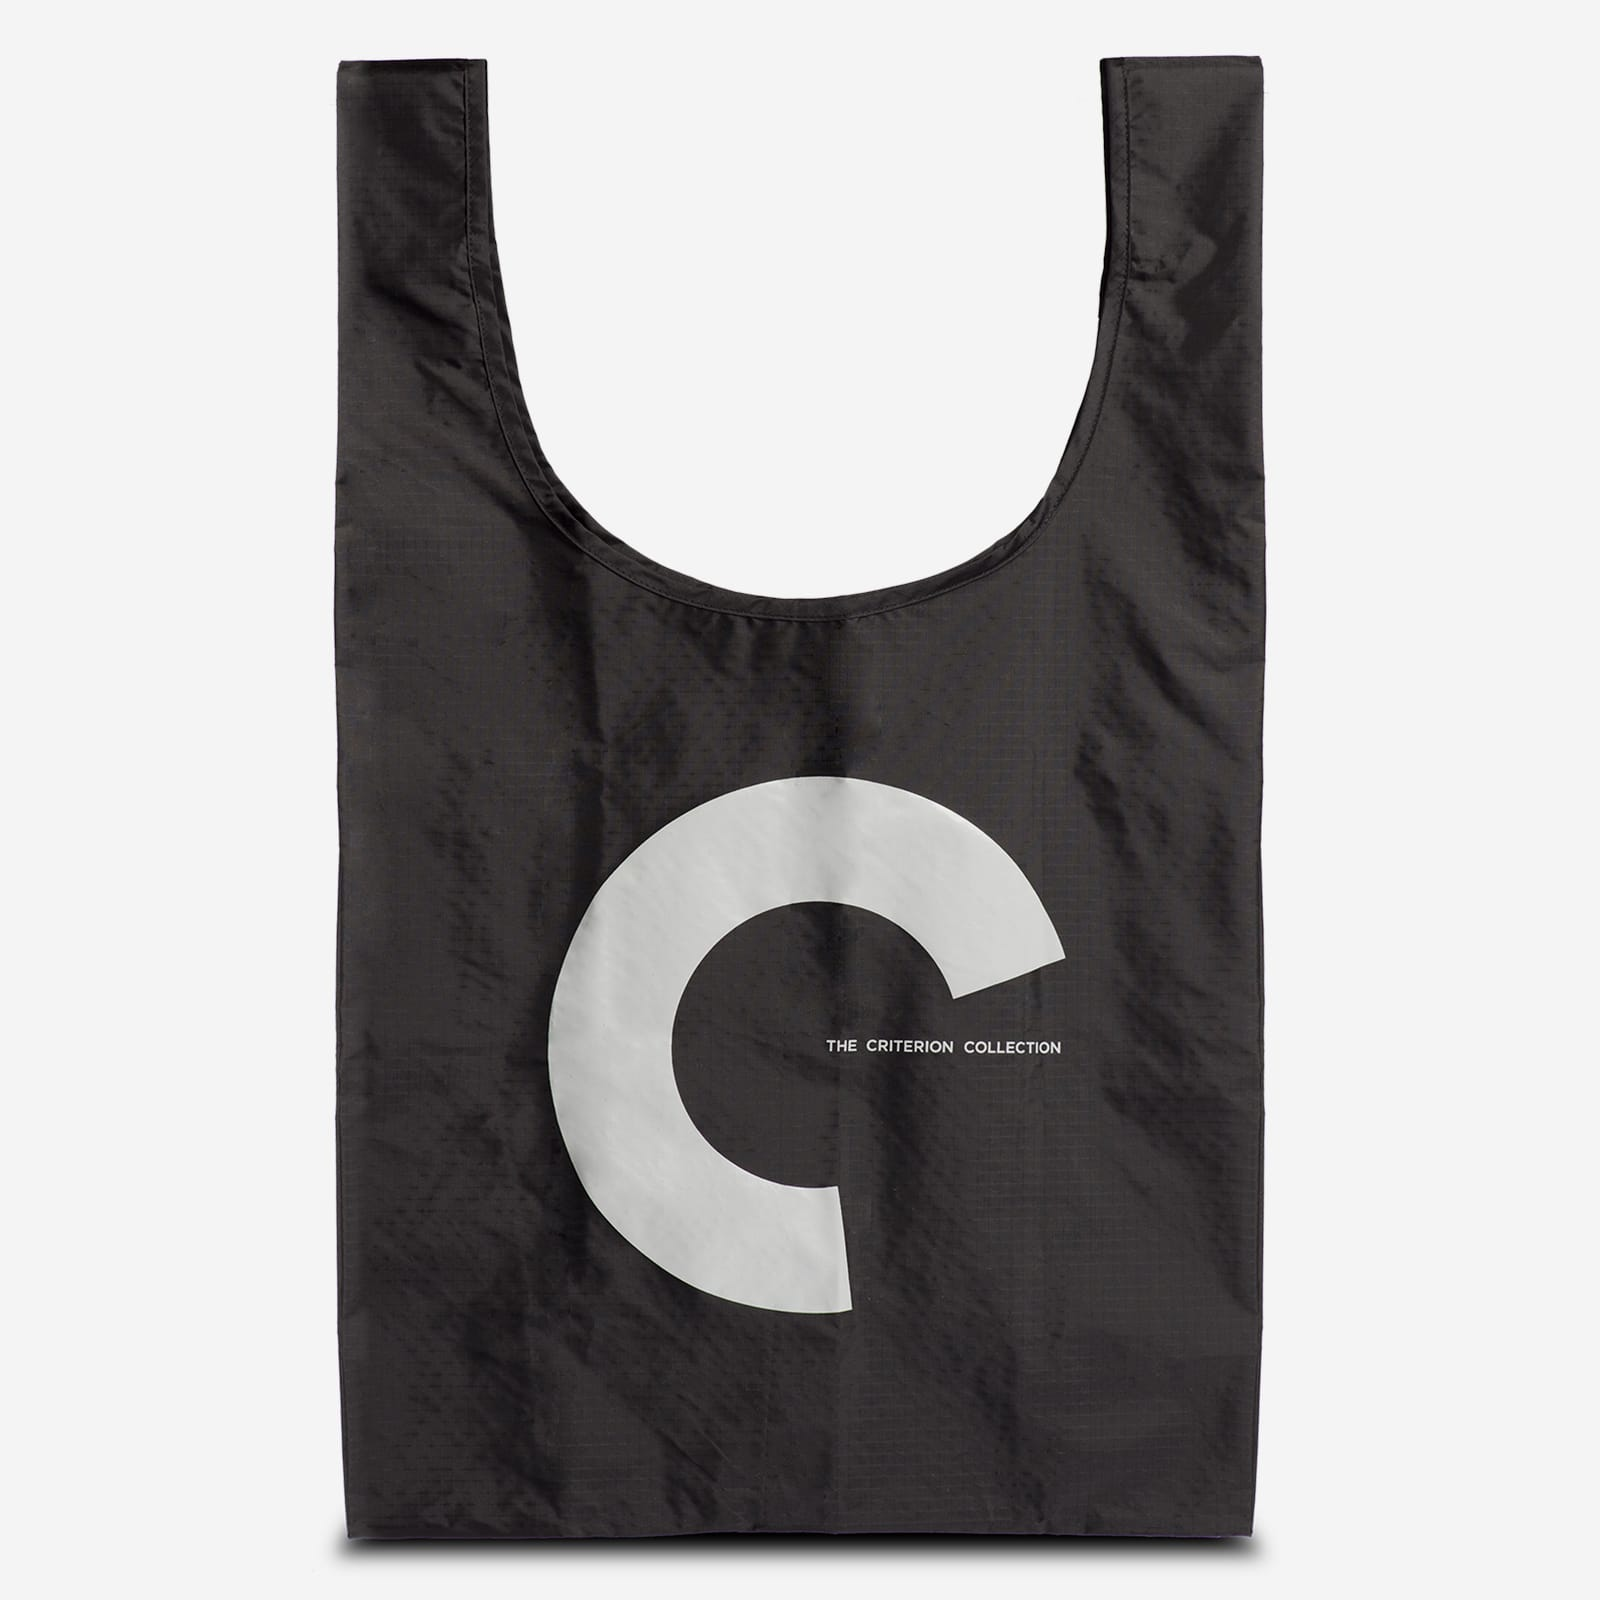 Criterion Collection BAGGU Tote Bag